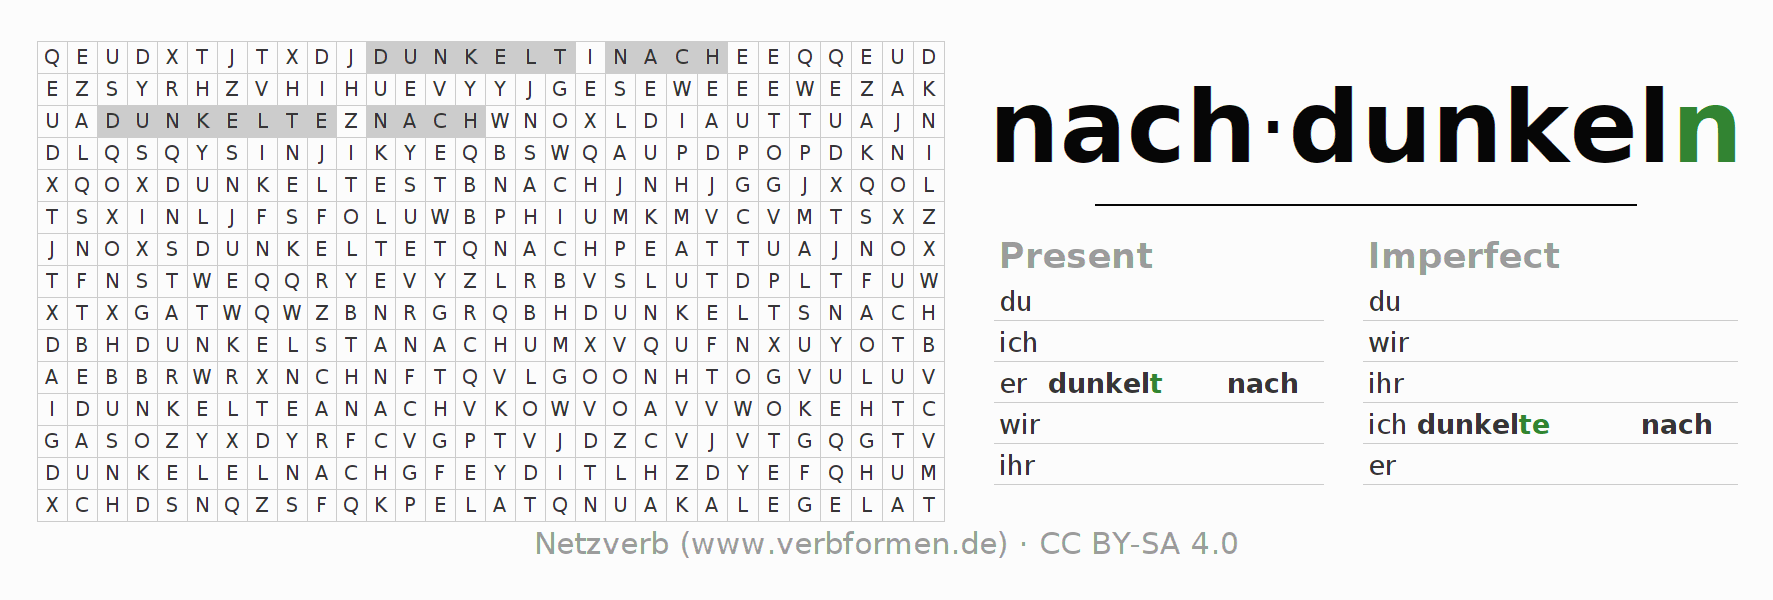 Word search puzzle for the conjugation of the verb nachdunkeln (hat)